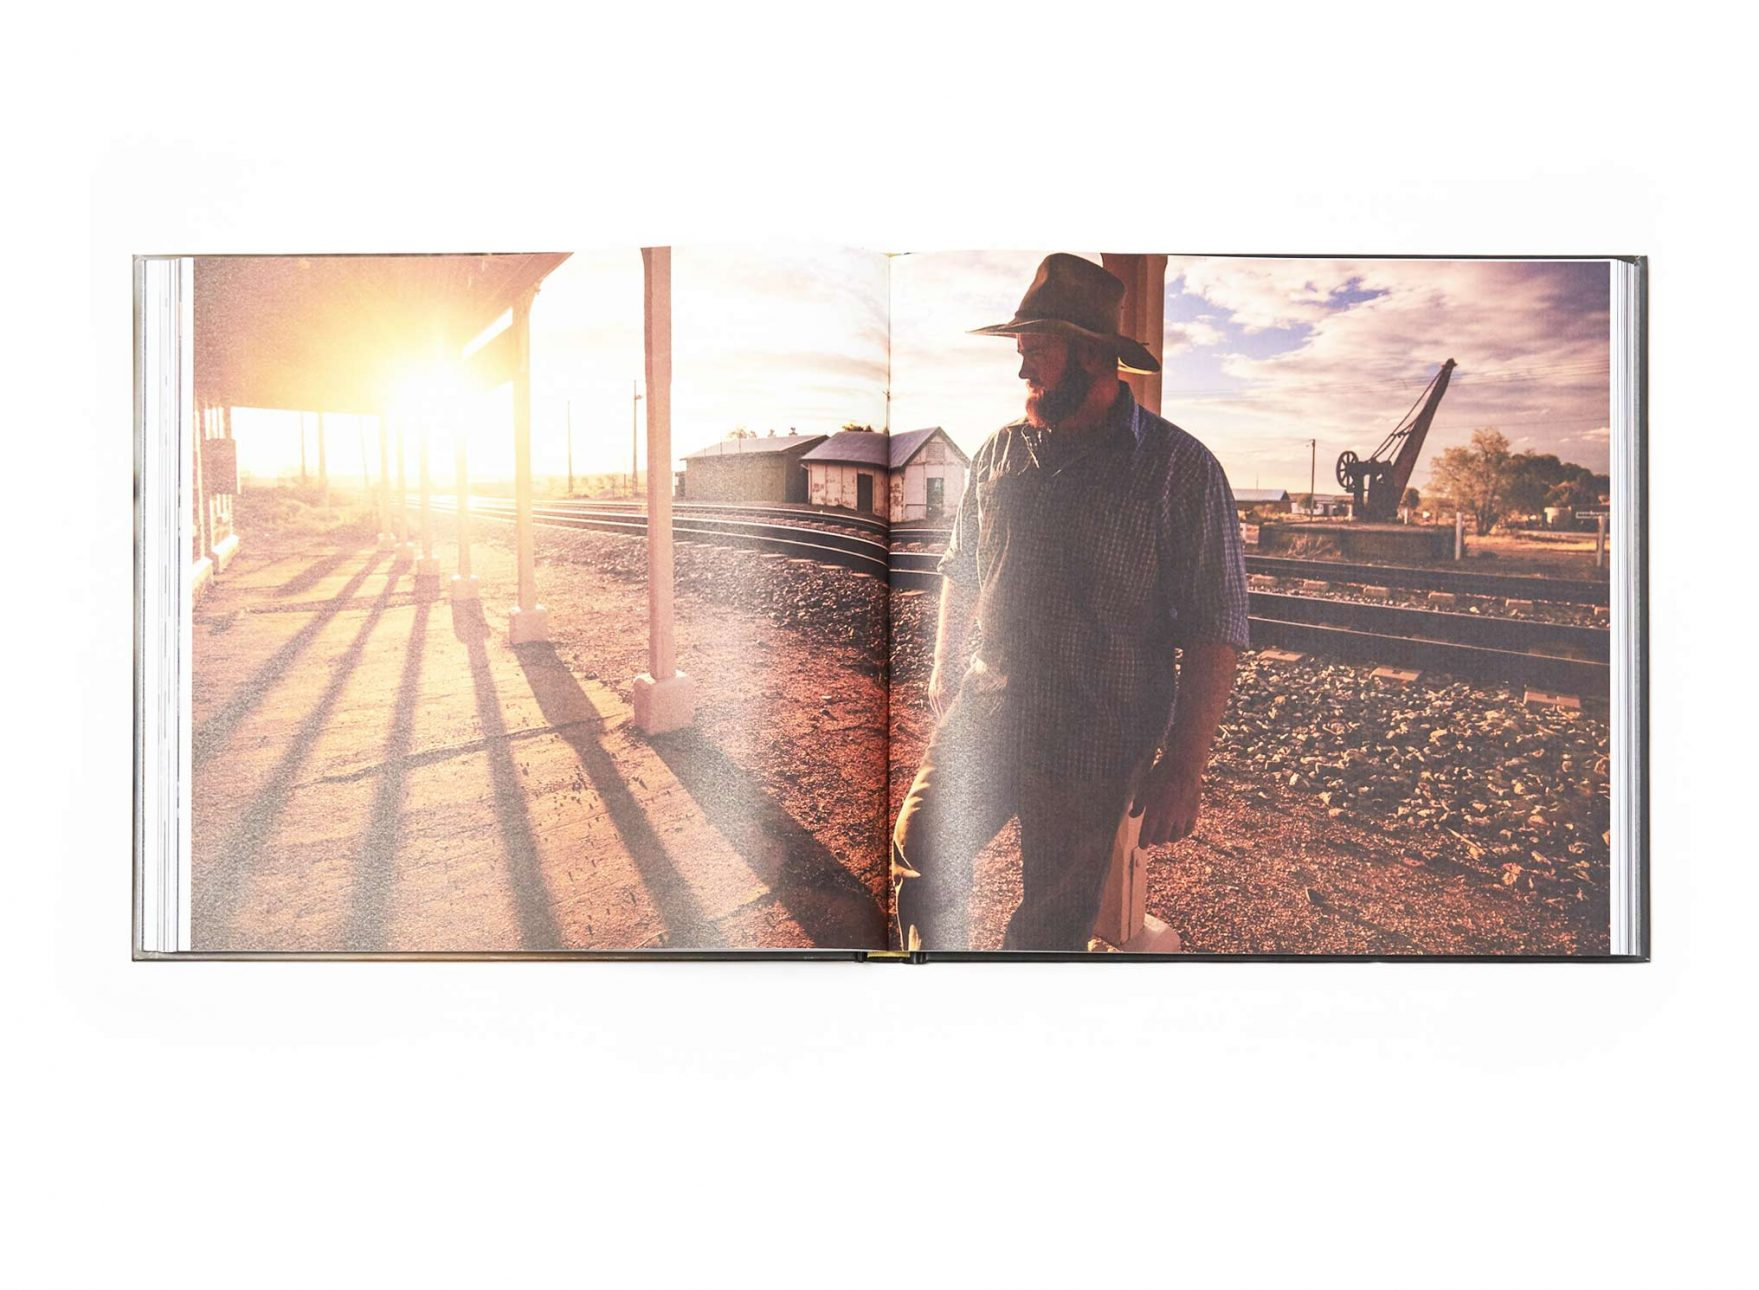 akubra-open-book-photograph-of-man